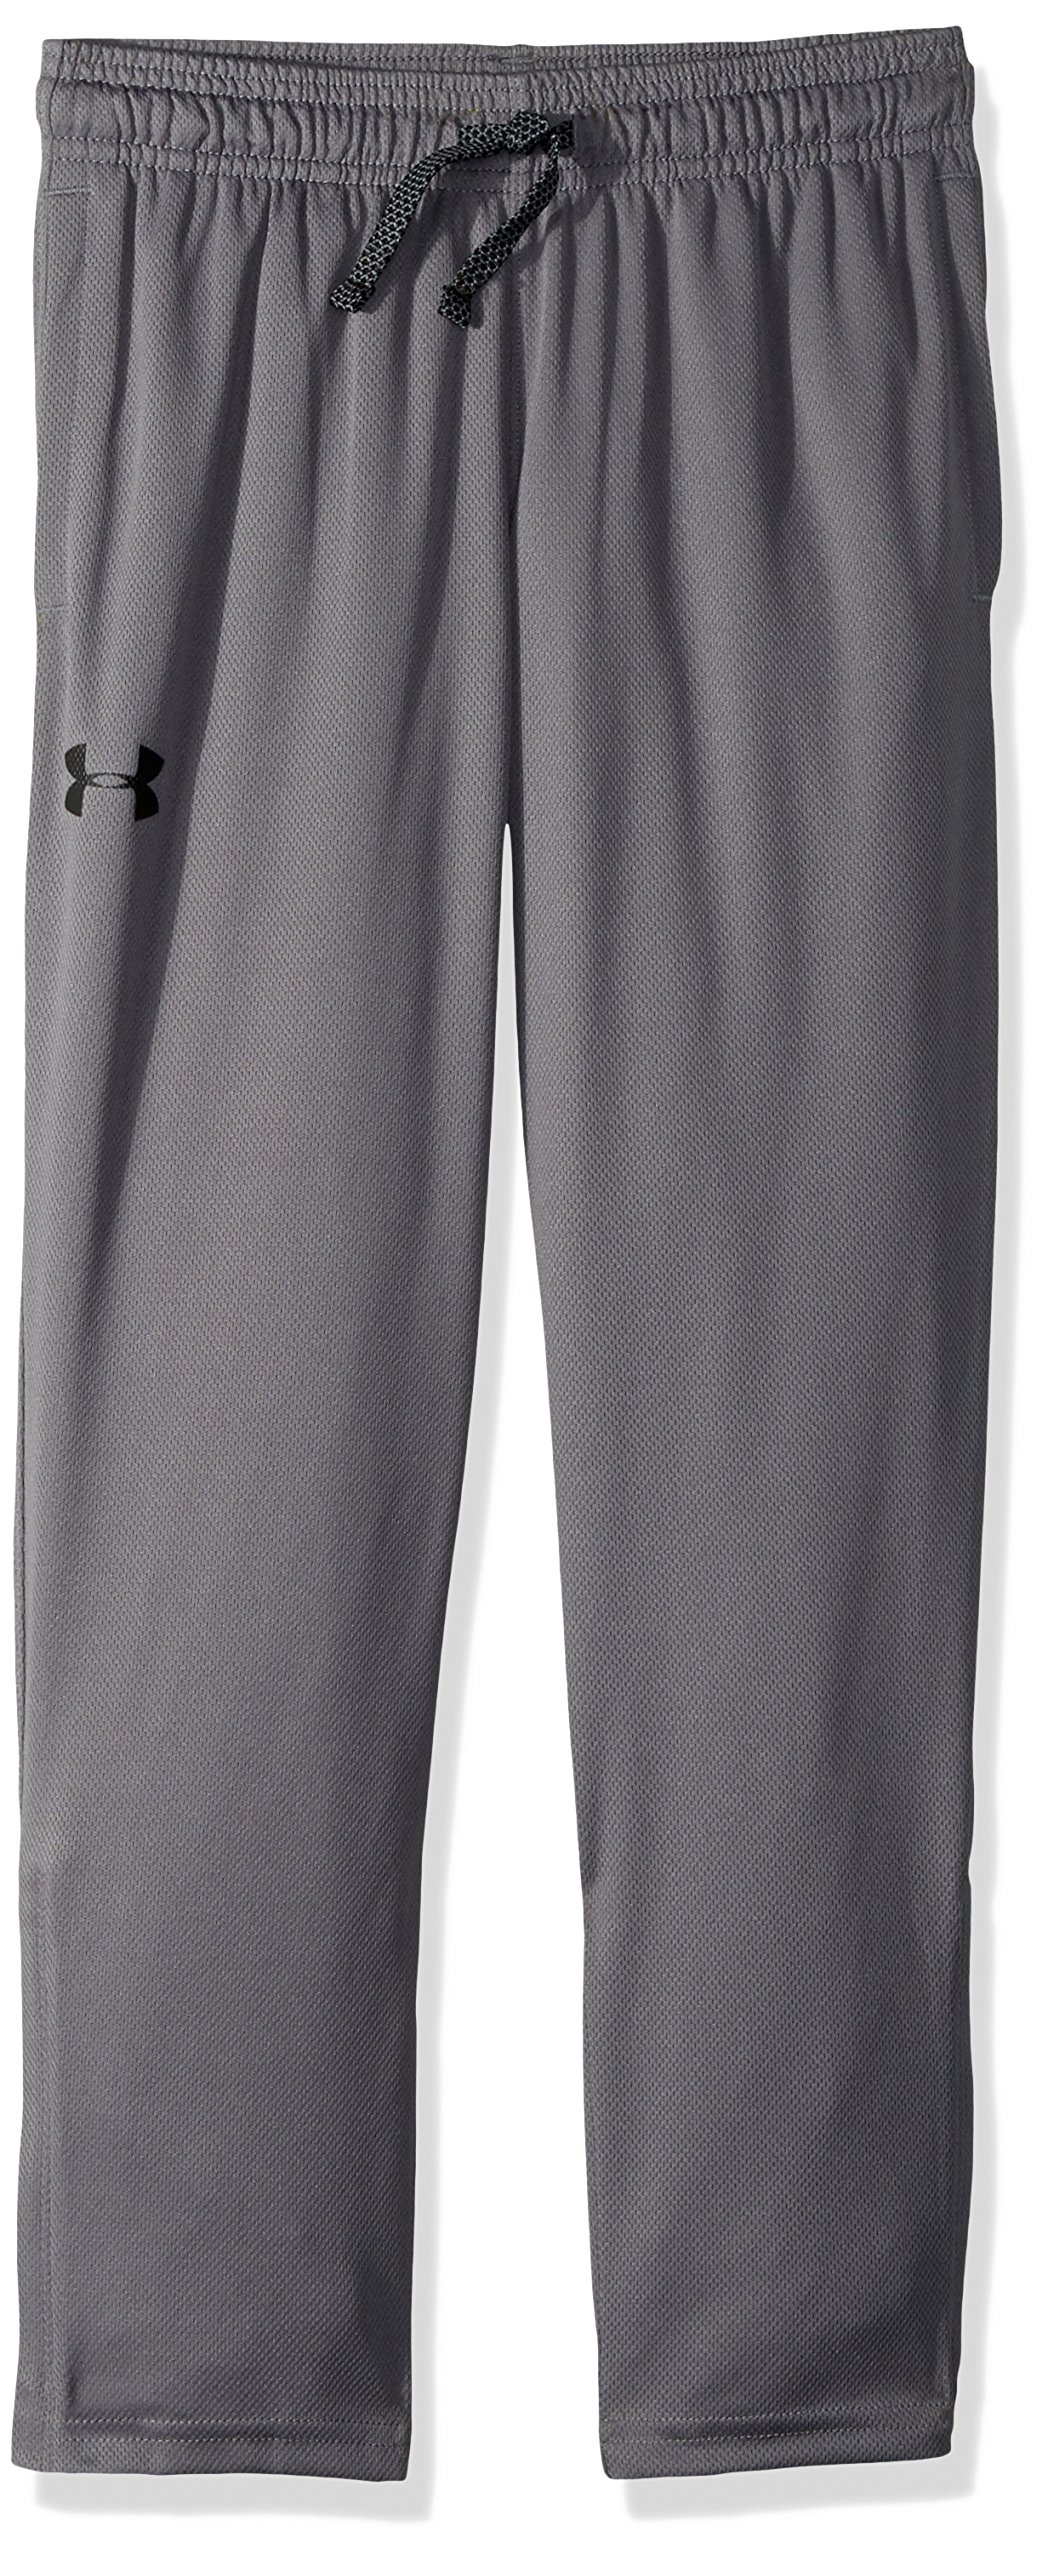 Under Armour Boys' Tech Pants, Graphite (041)/Black, Youth X-Large by Under Armour